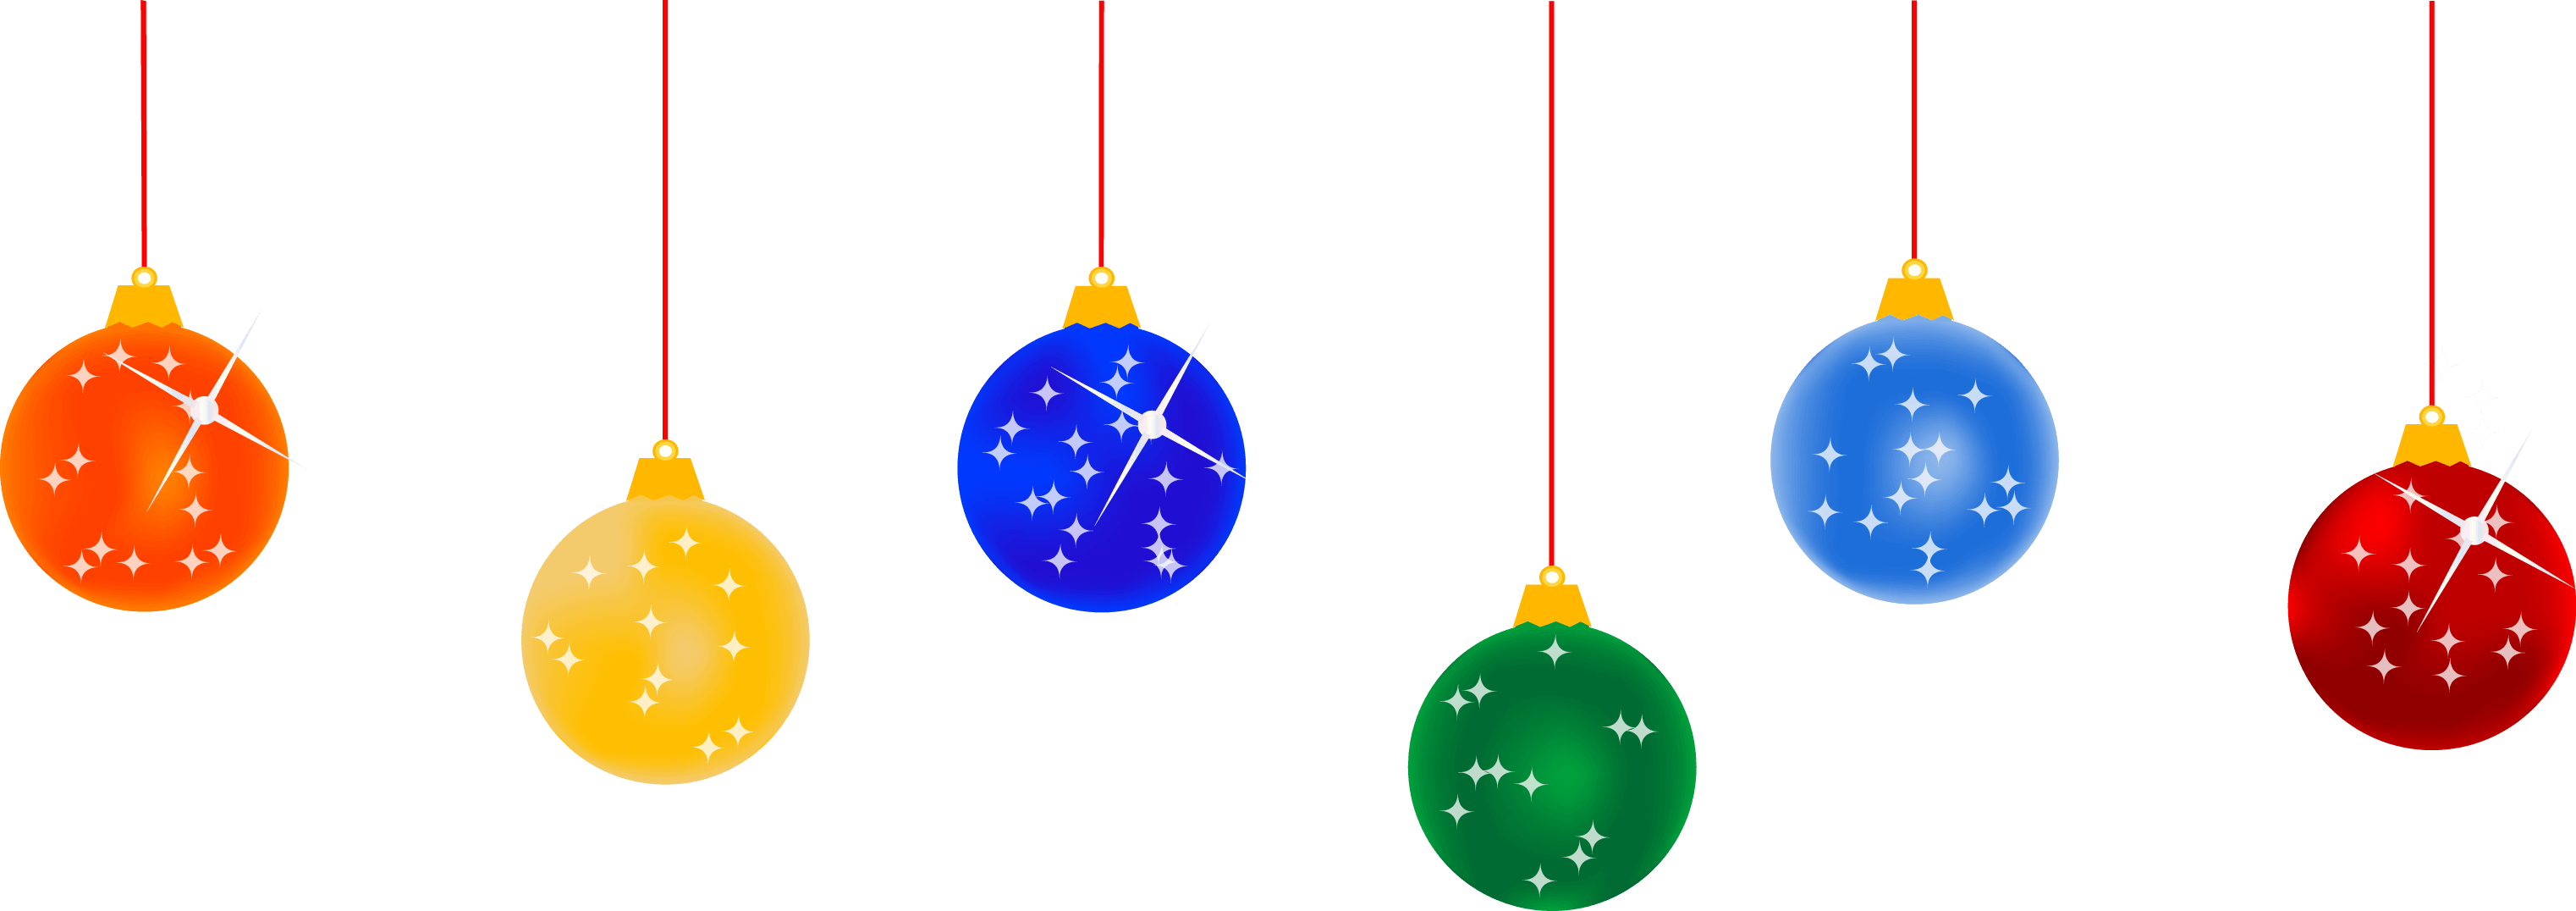 Hanging christmas lights png. Picture